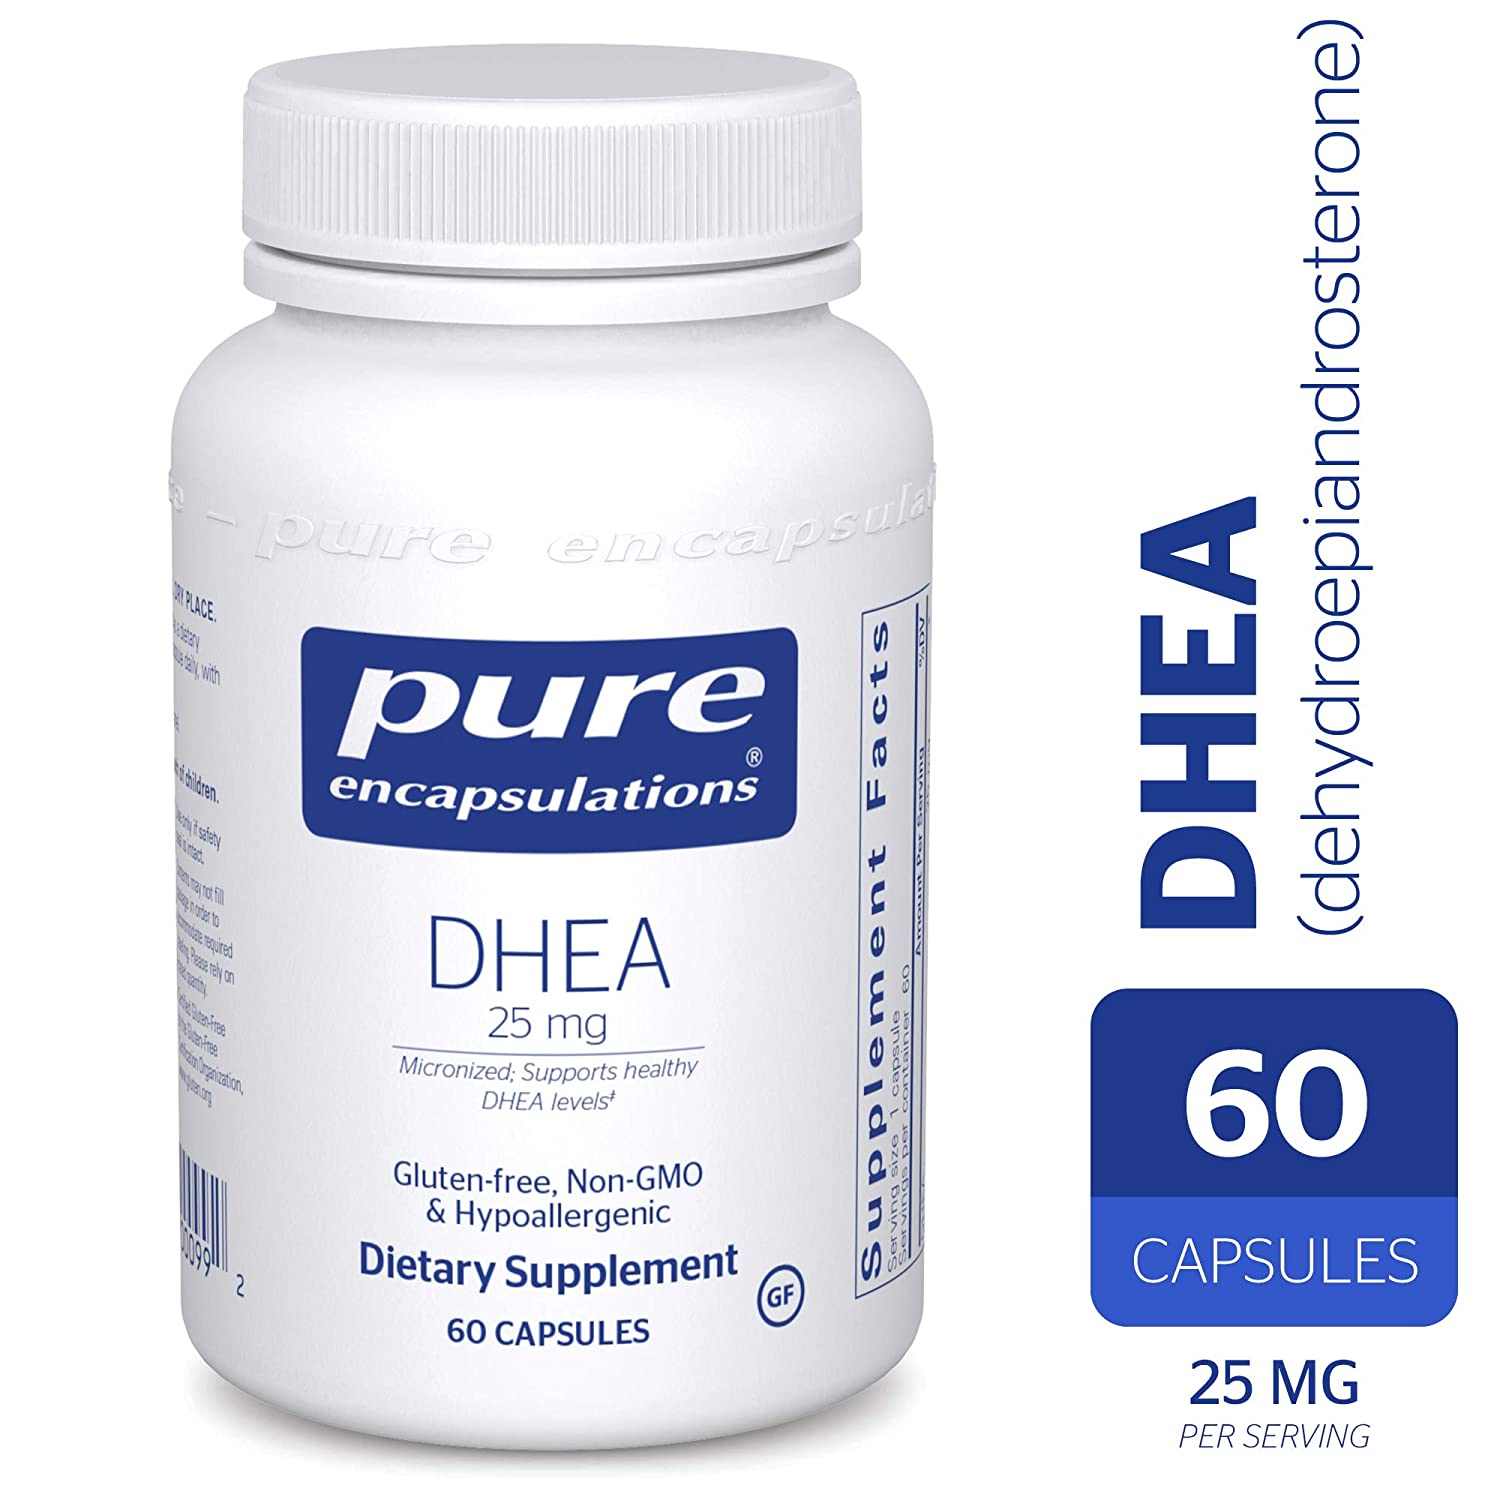 Amazon.com: Pure Encapsulations - DHEA (Dehydroepiandrosterone) 25 mg - Micronized Hypoallergenic Supplement - 60 Capsules: Health & Personal Care